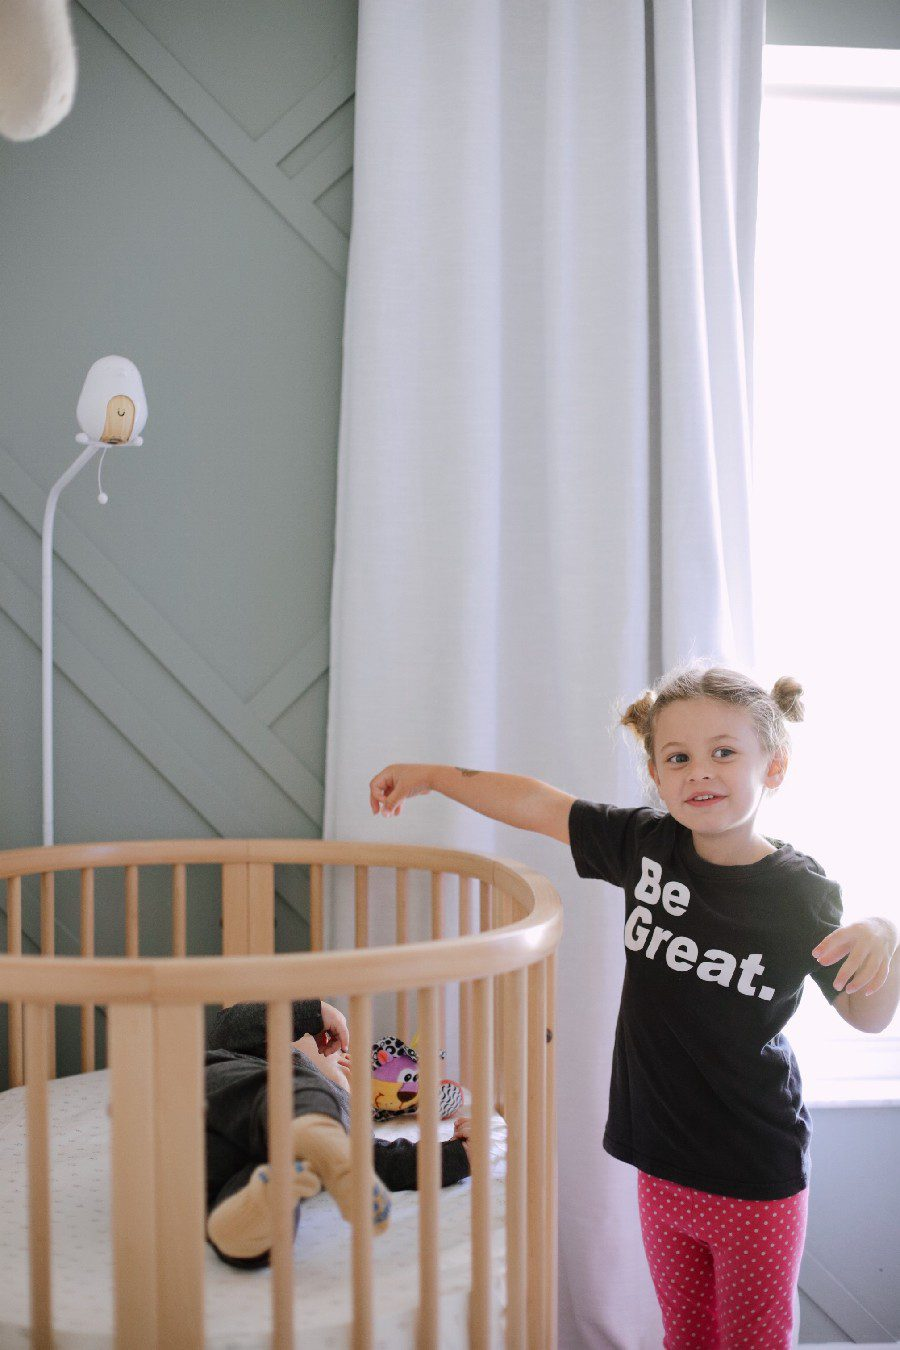 Big sister playing with baby in the stokke sleepi crib. The Best Baby Monitor for Twins - Cubo Ai Smart Baby Monitor Review | Best Baby Monitor by popular Florida motherhood blog, Fresh Mommy Blog: image of a little girl standing next to a baby laying in a stokke sleepi crib.